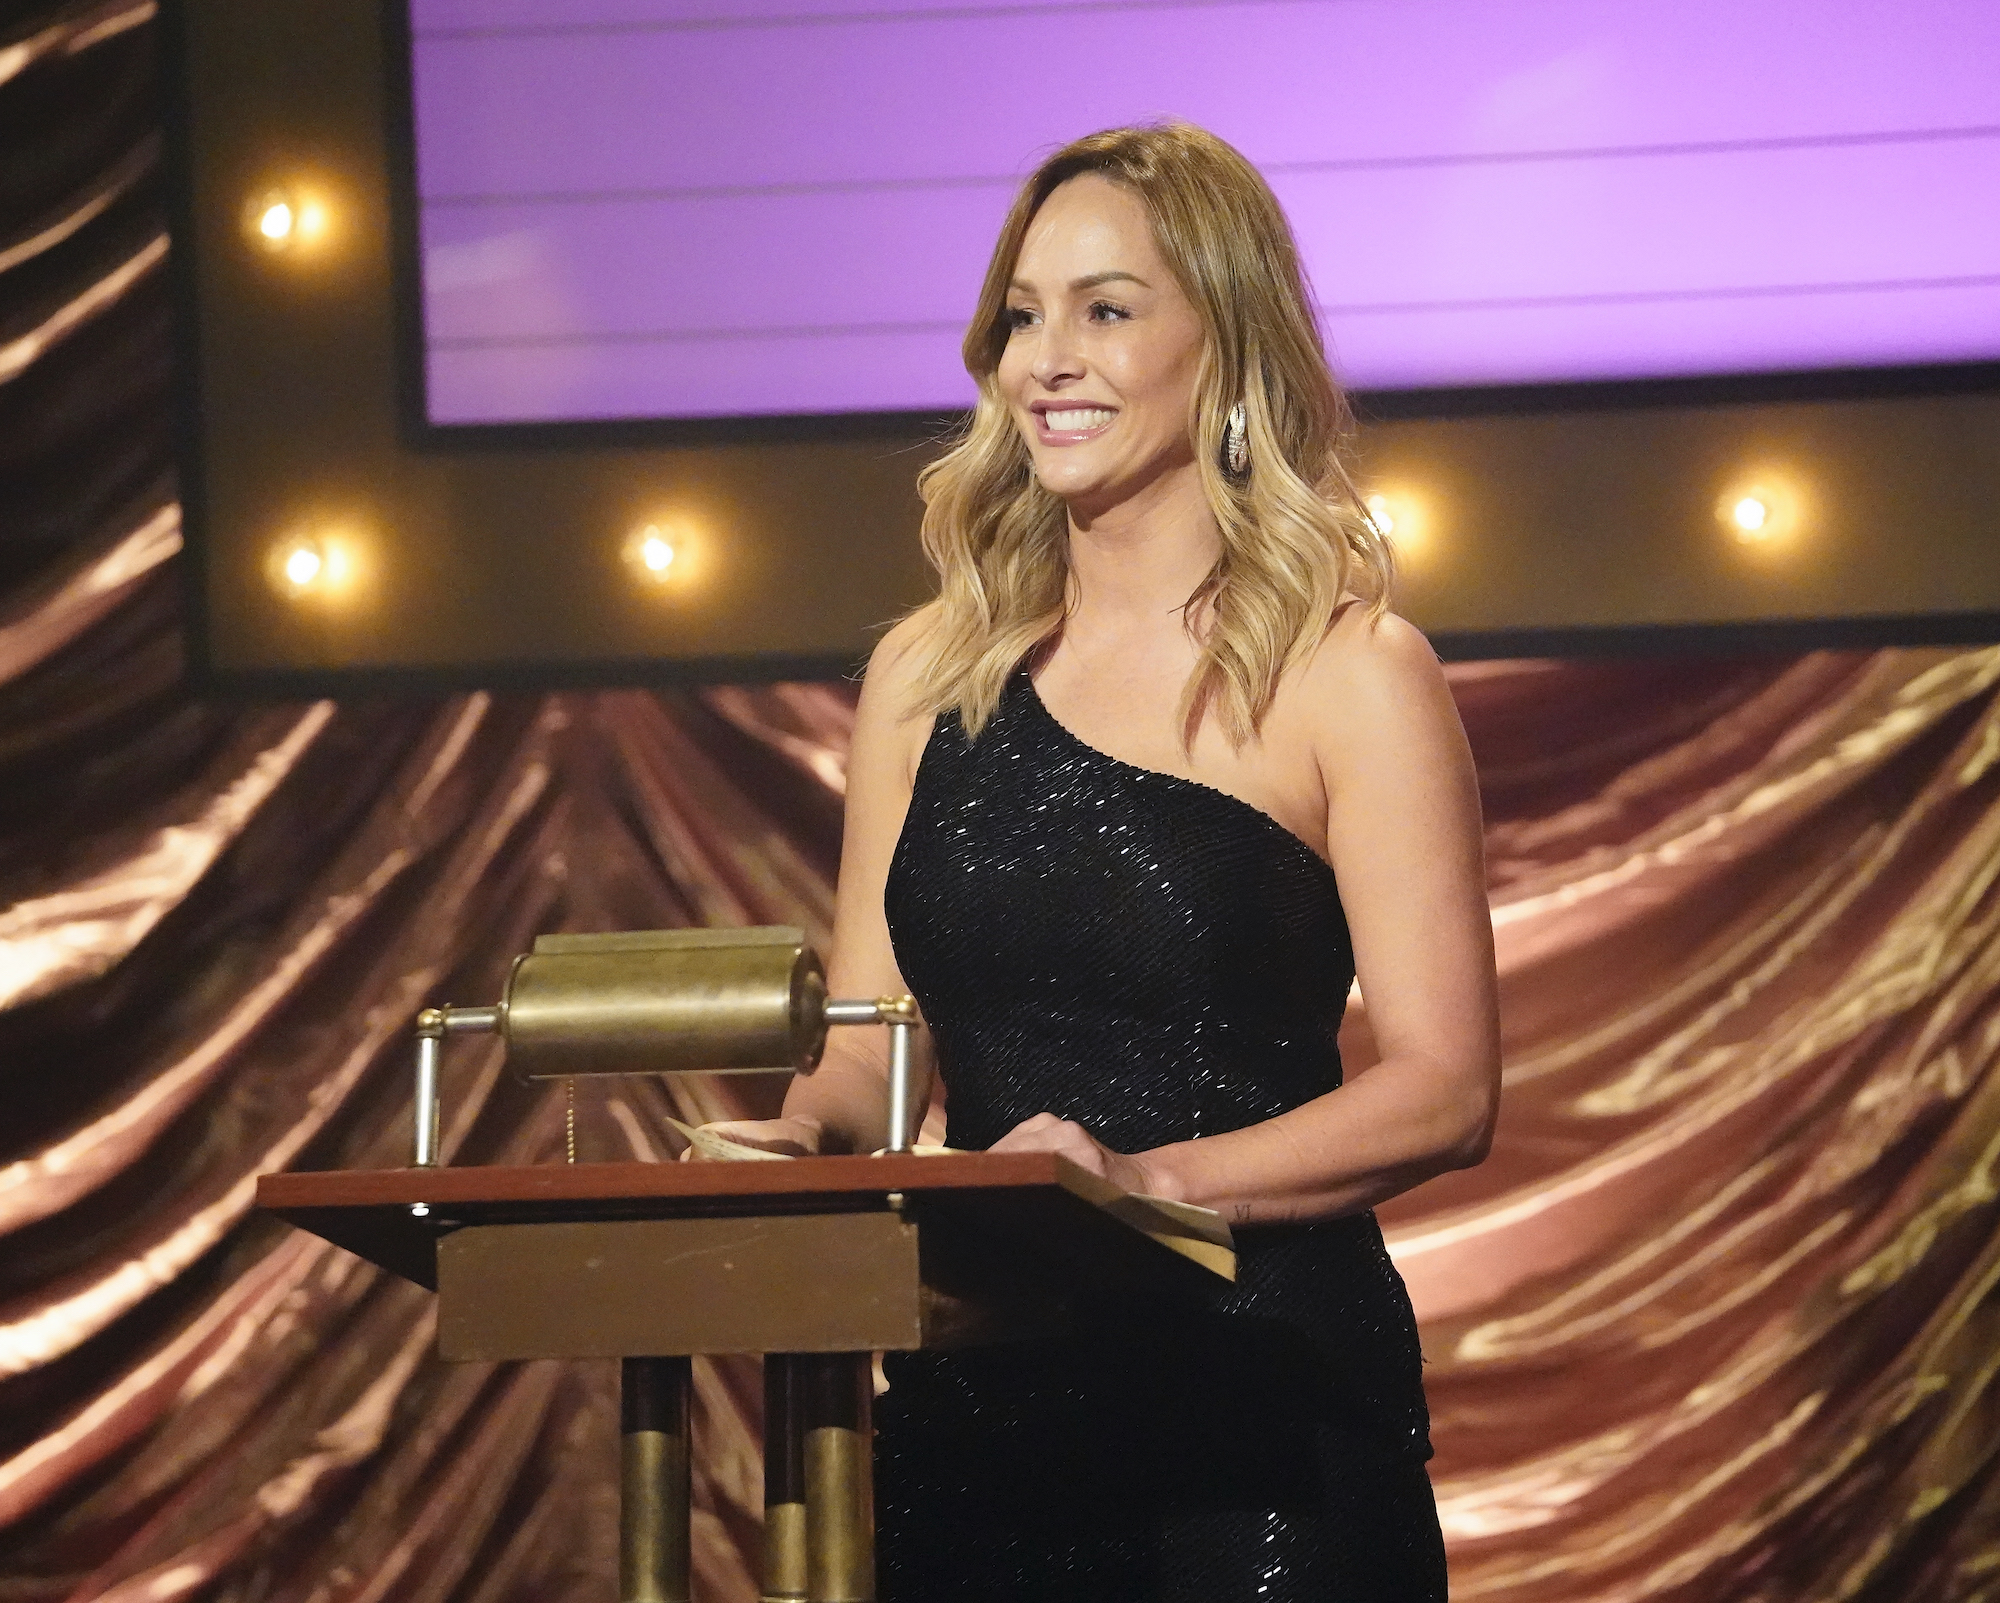 Clare Crawley in Week 3 of 'The Bachelorette' during the men's roast.